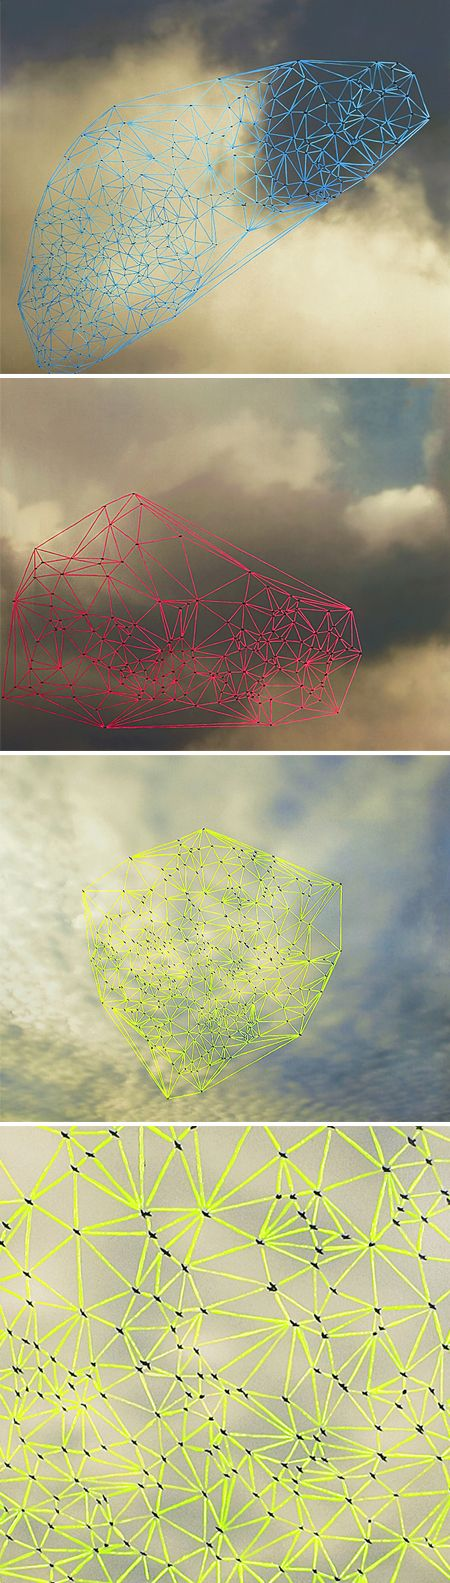 DIGITAL & PAINT - Catherine Ulitsky - takes photos of groups of birds in flight, then joins them to create geometric shapes.